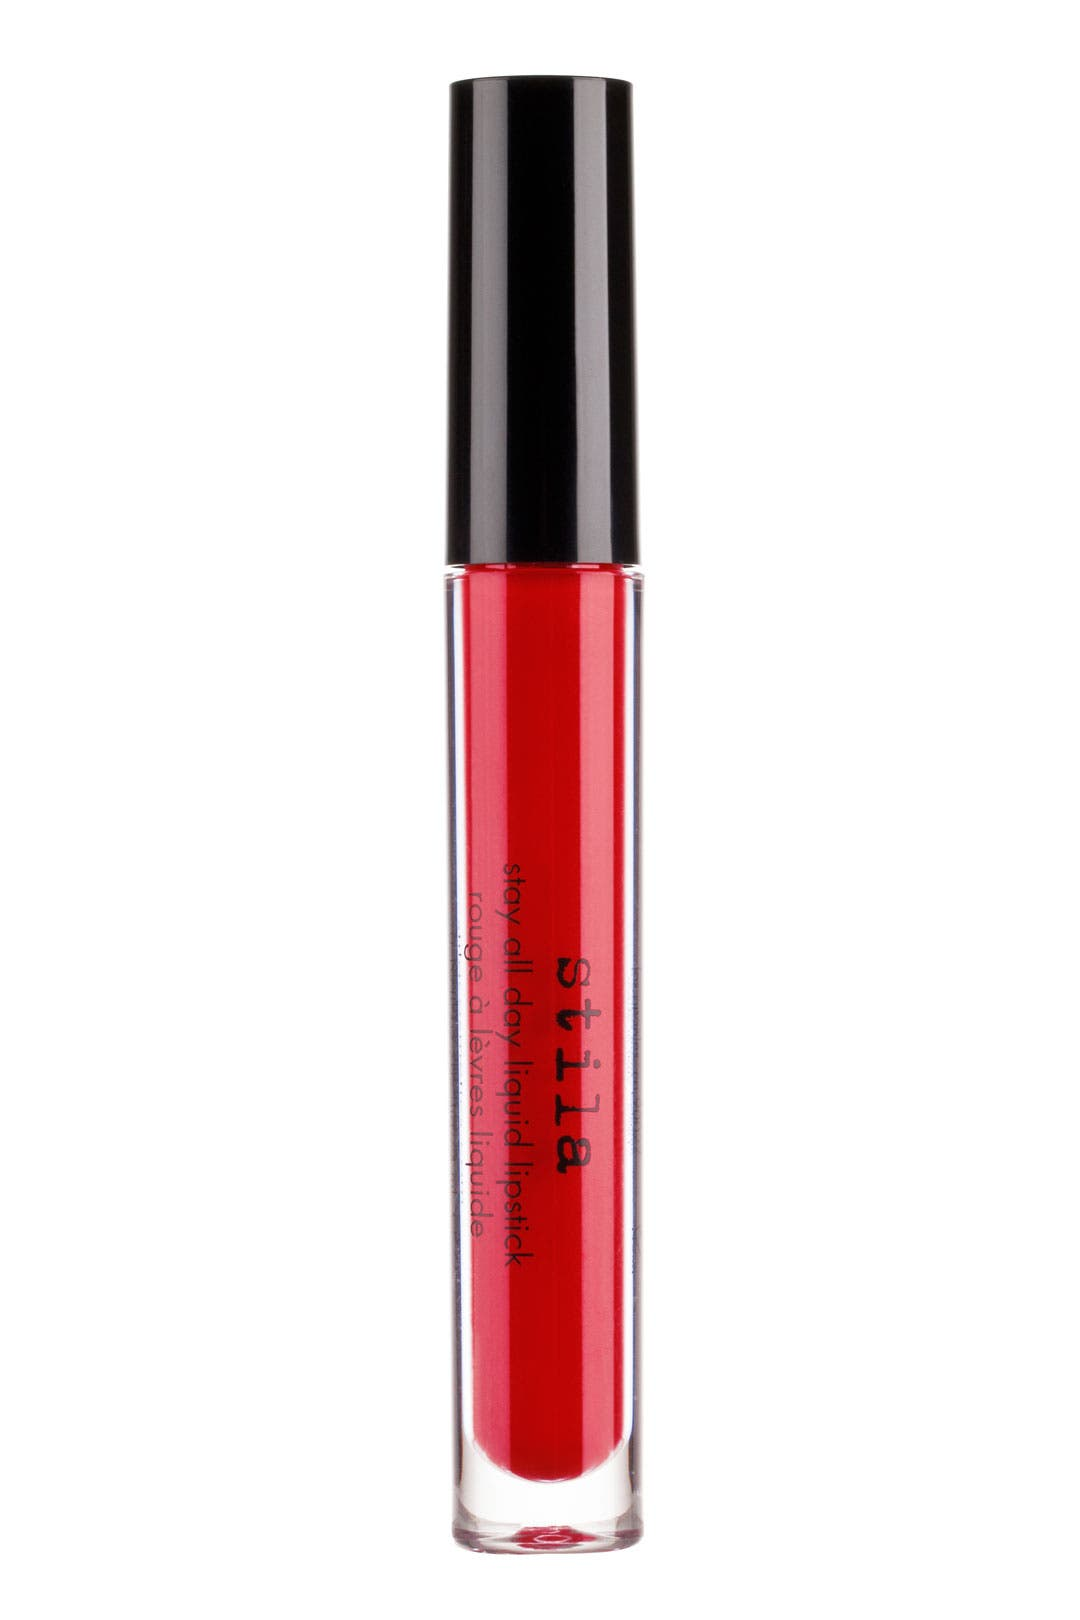 Stay All Day Liquid Lipstick in Fiery by stila